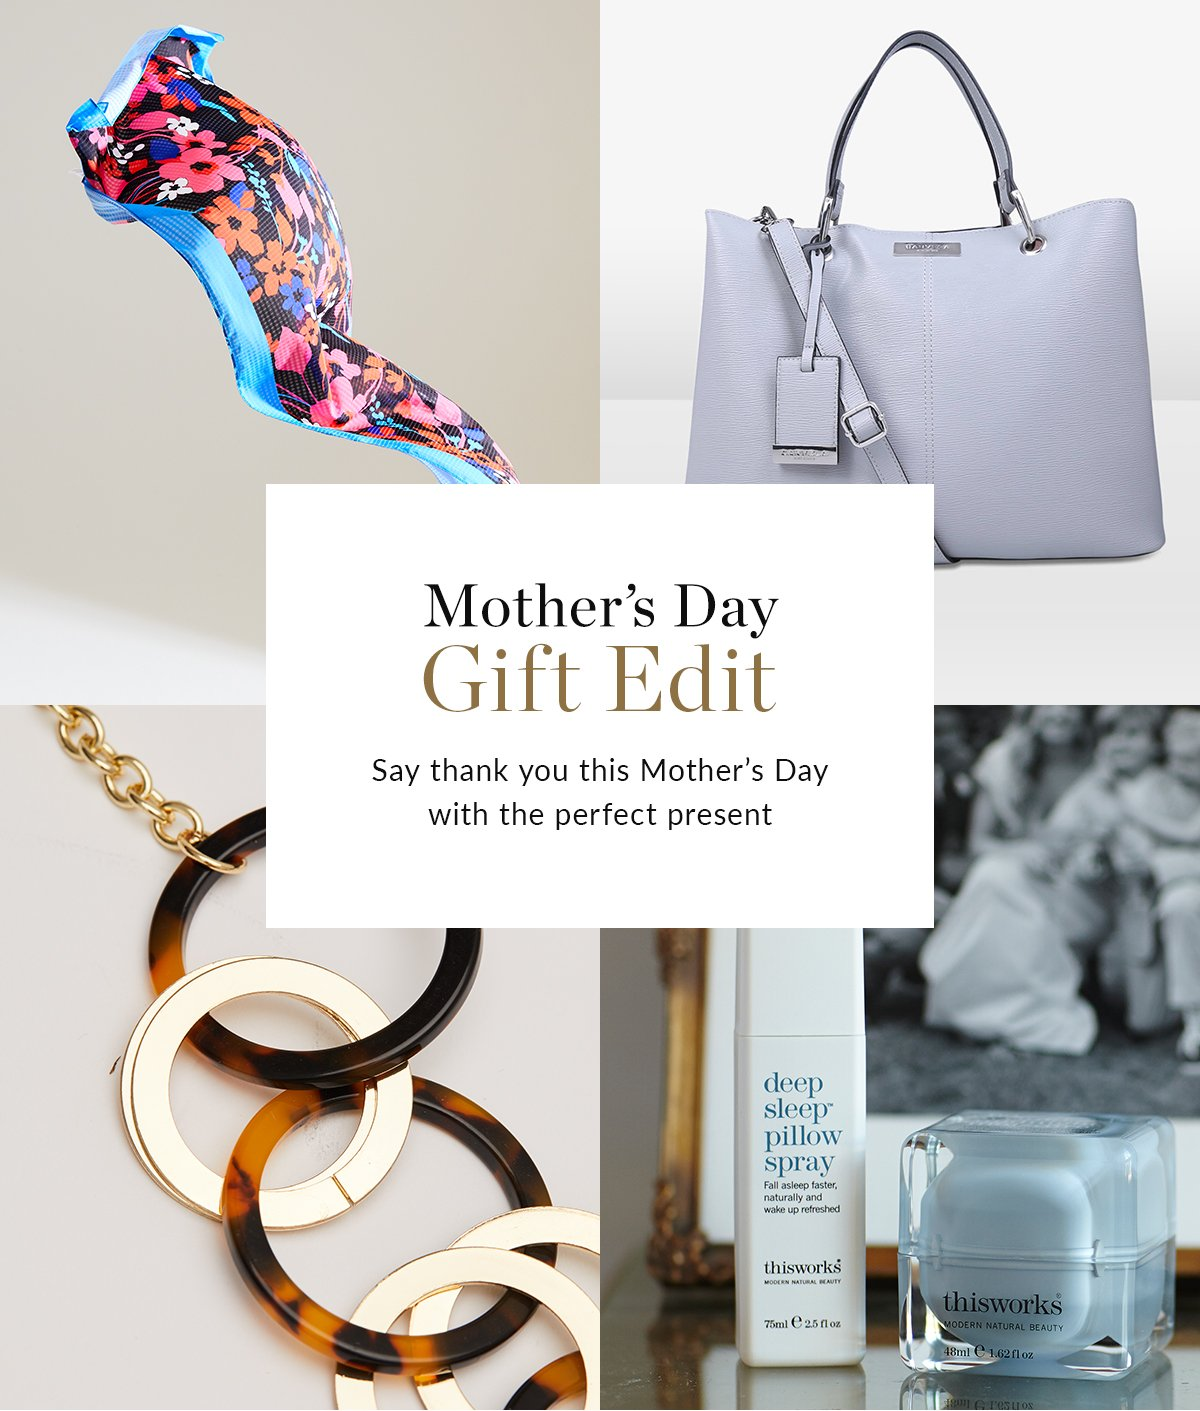 Mother's Day Gift Edit | Say thank you this Mother's Day with the perfect present